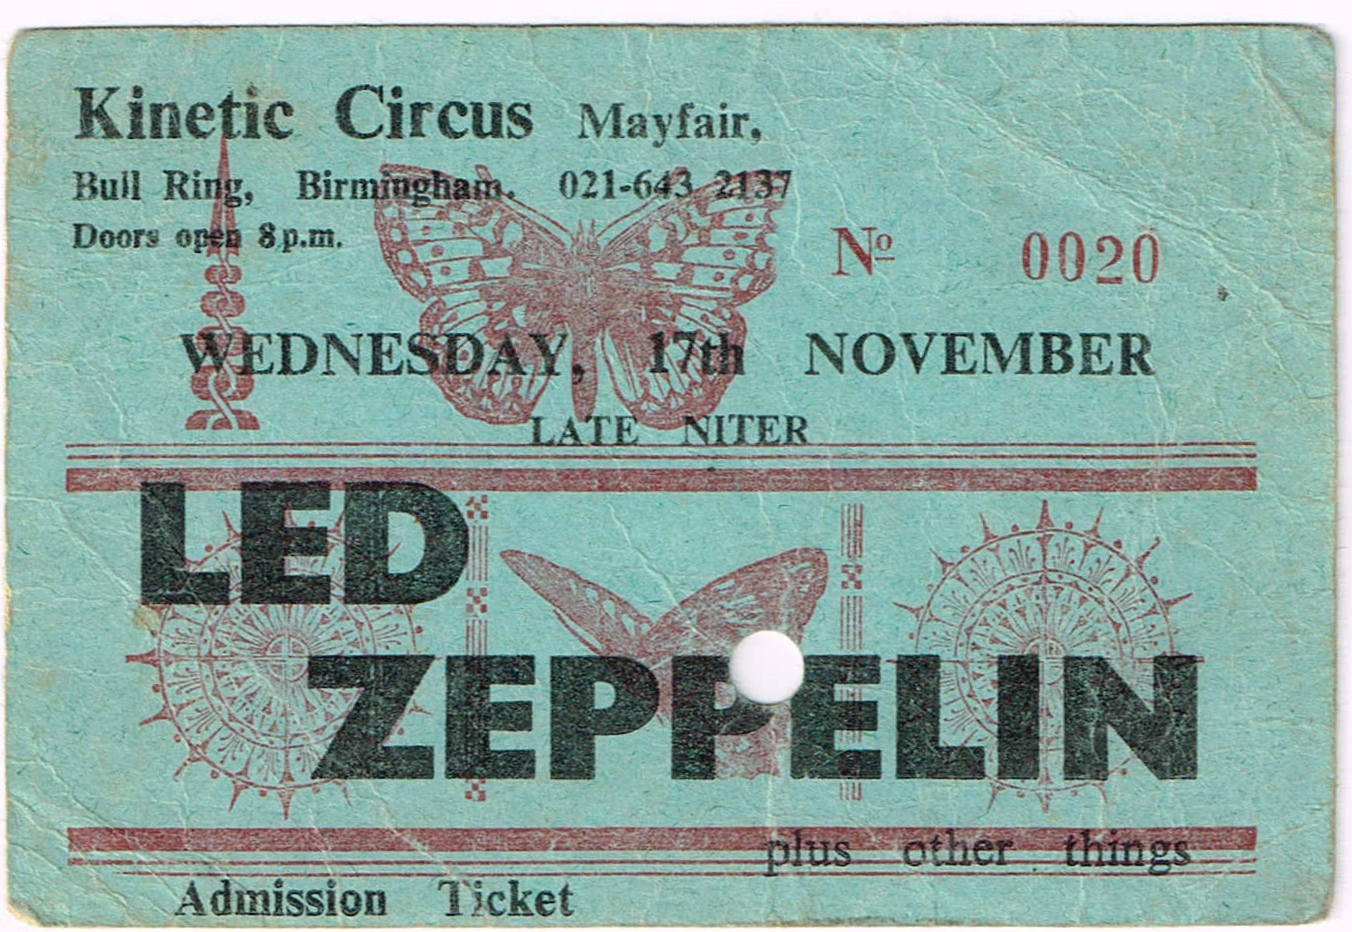 Kinetic Circus Ticket Stub1